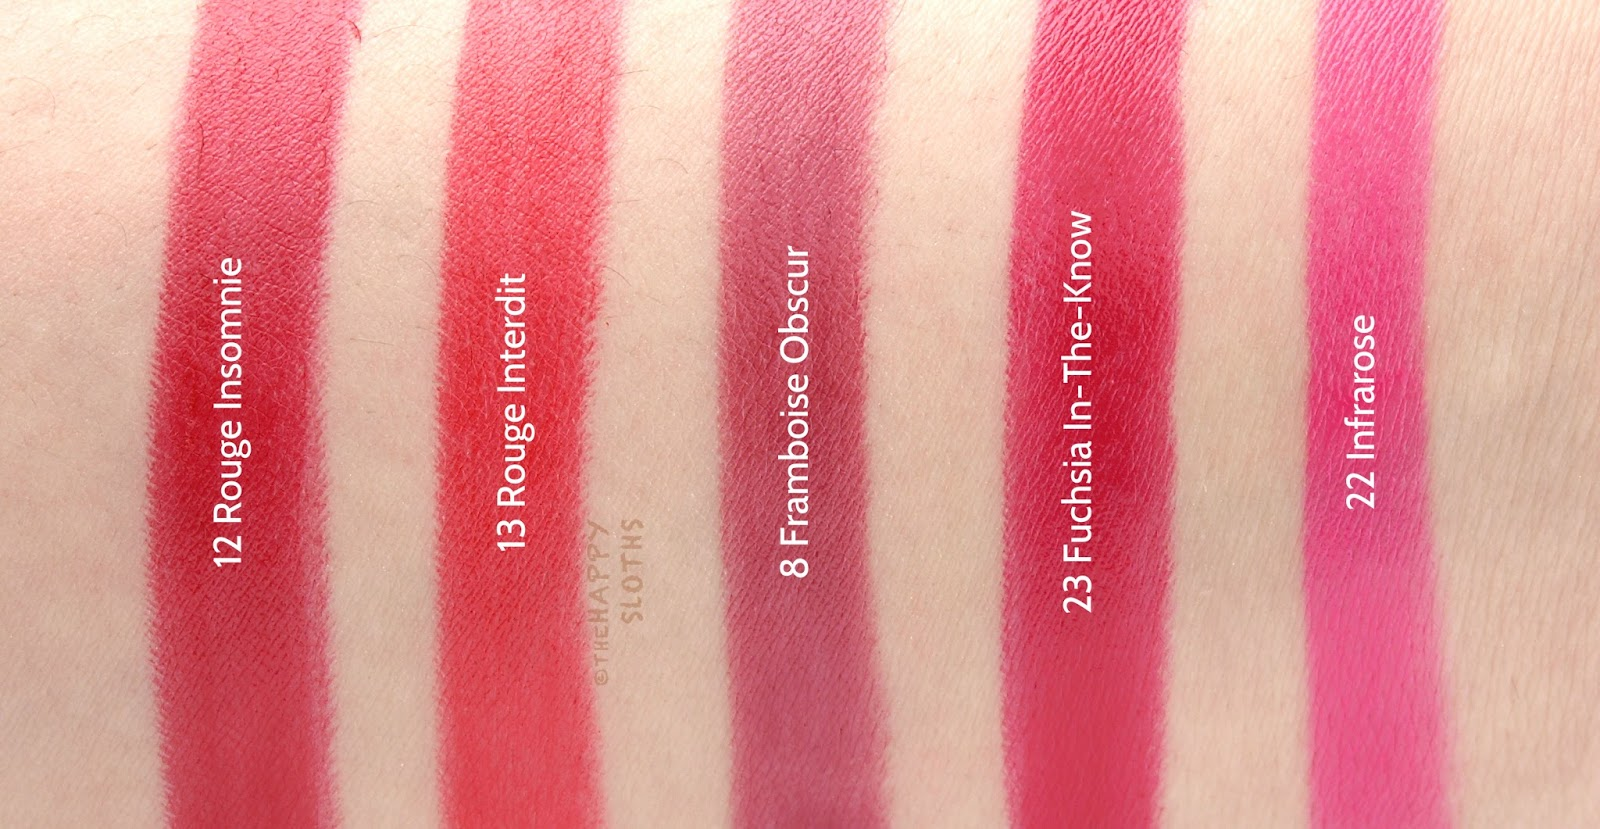 Givenchy Rouge Interdit Satin Lipsticks: Review and Swatches